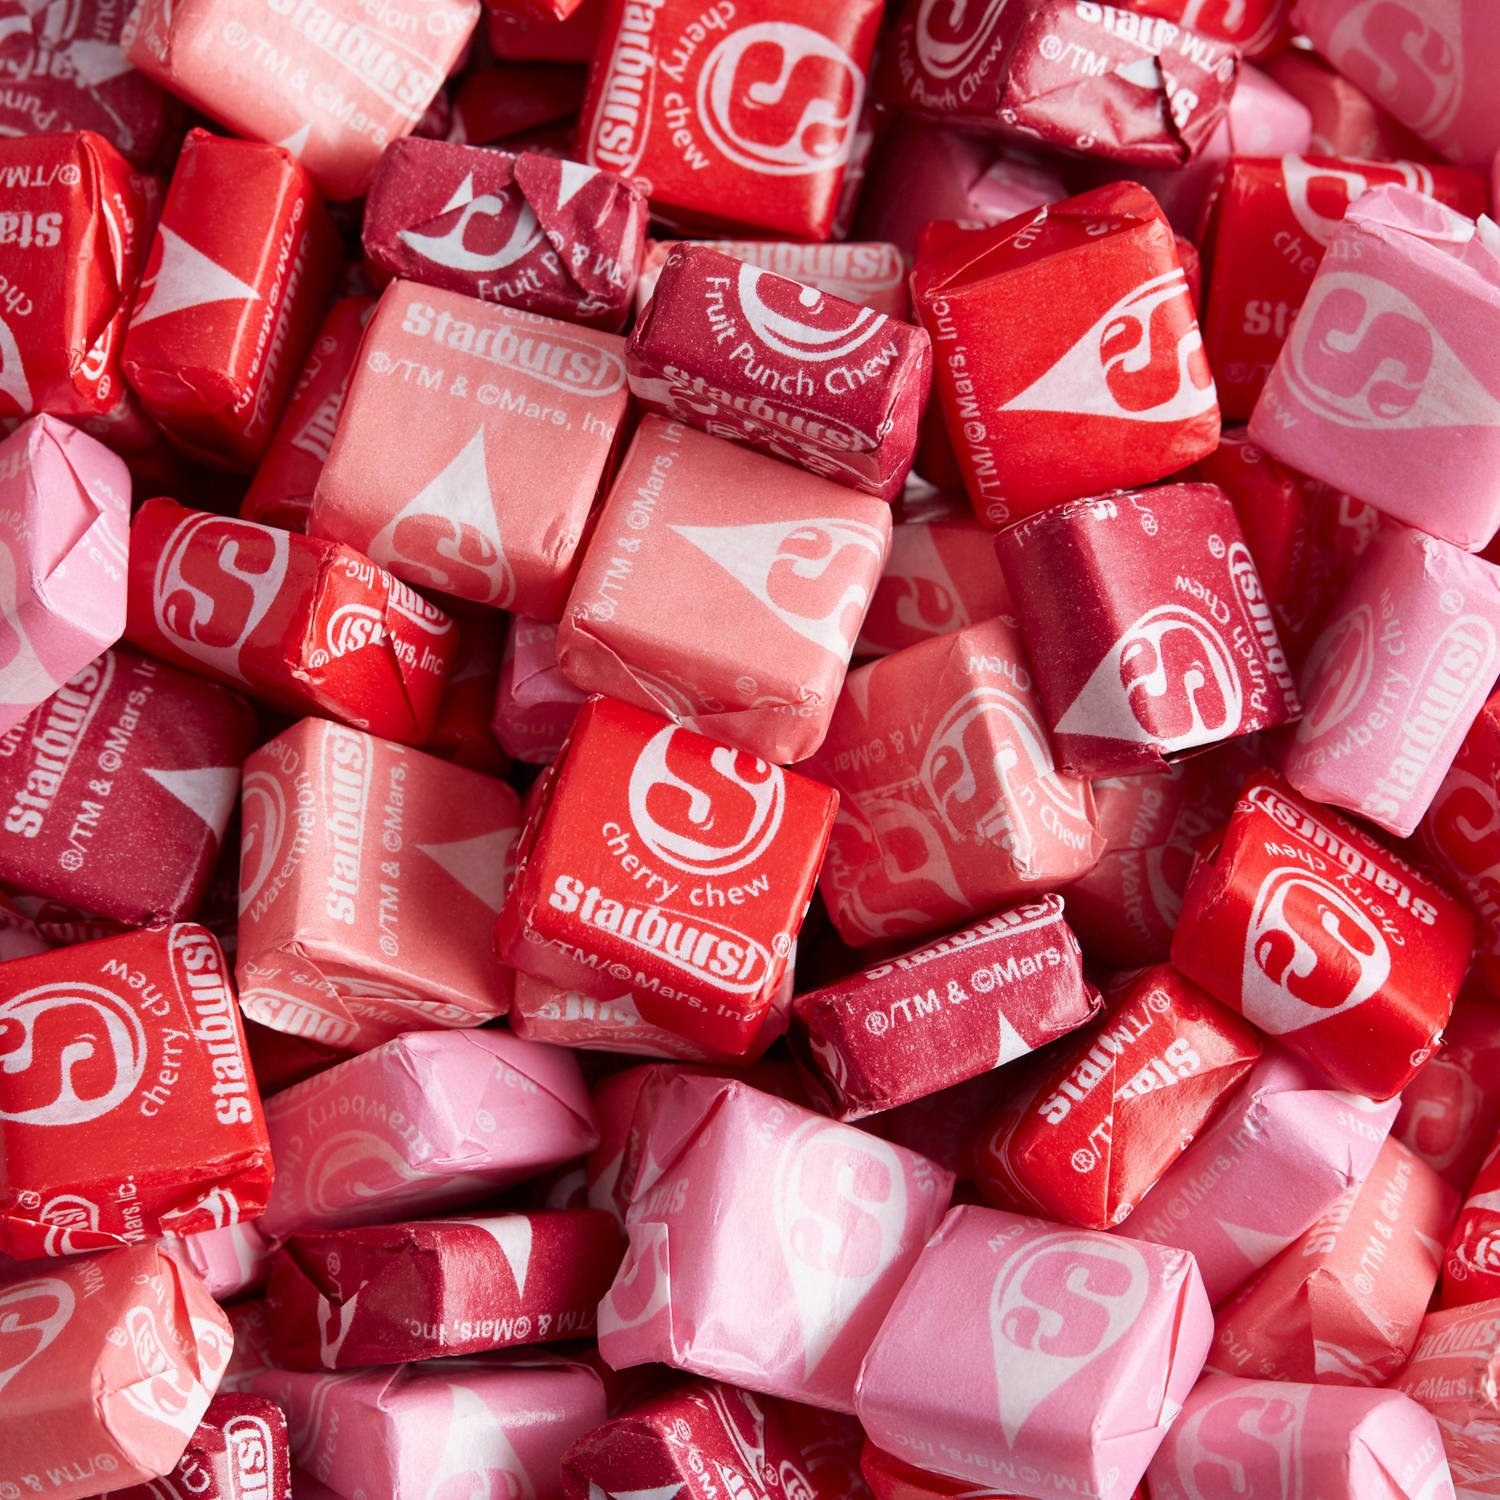 Starburst Fav Reds Fruit Chews Candy-5 Pounds Bulk/ Wholesale-Great for Snacking, Treats, Baking, Candy Bowls